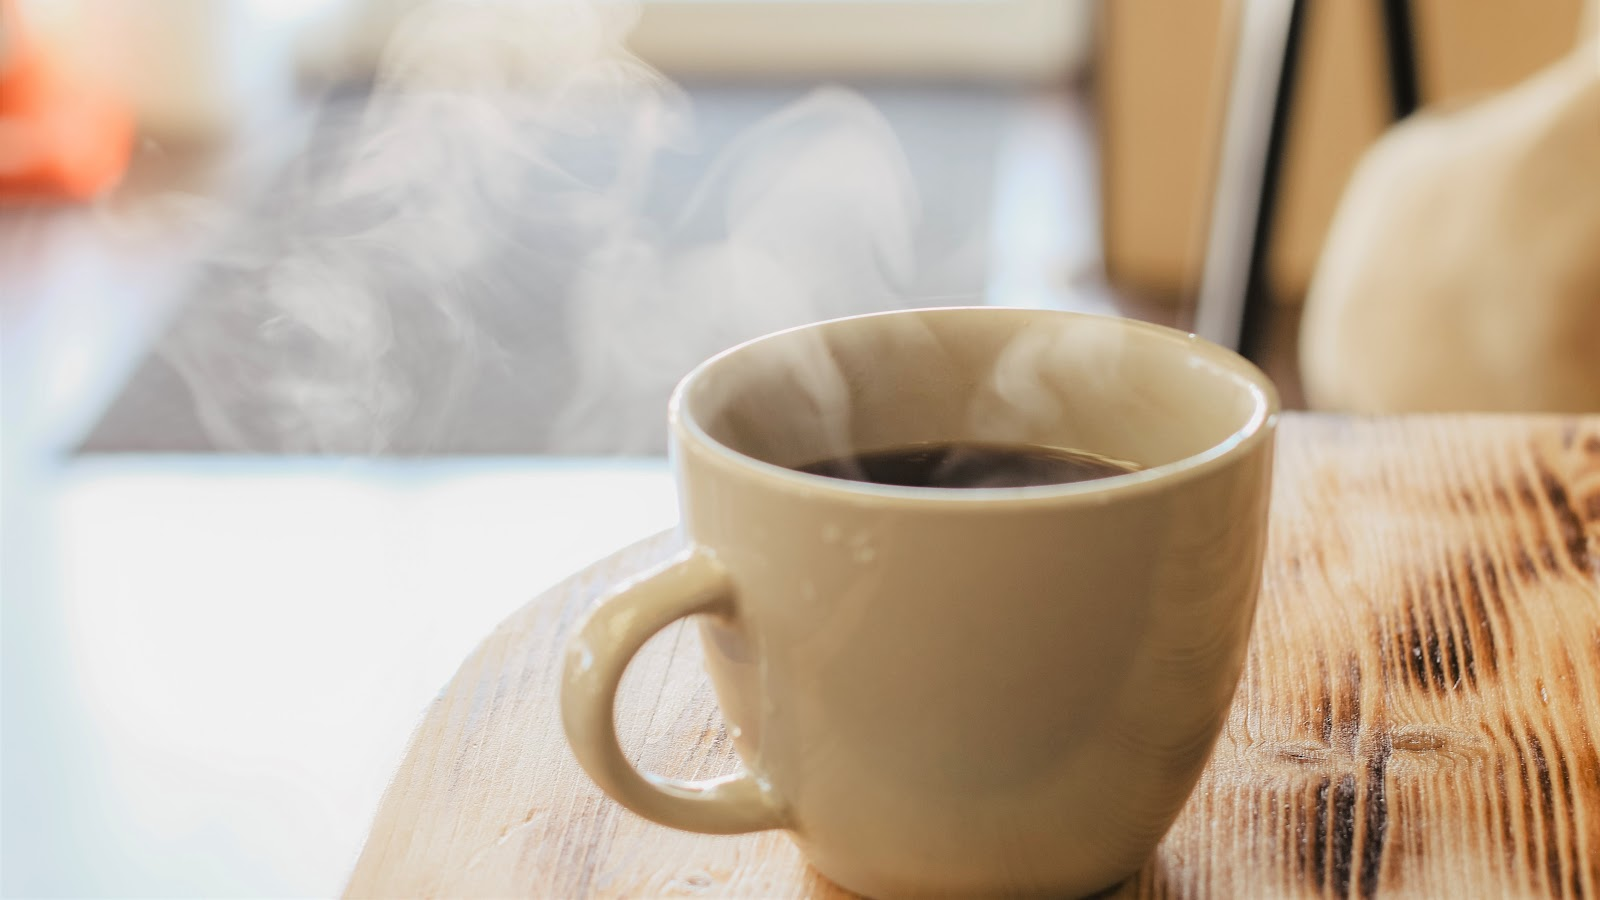 a hot cup of coffee with steam